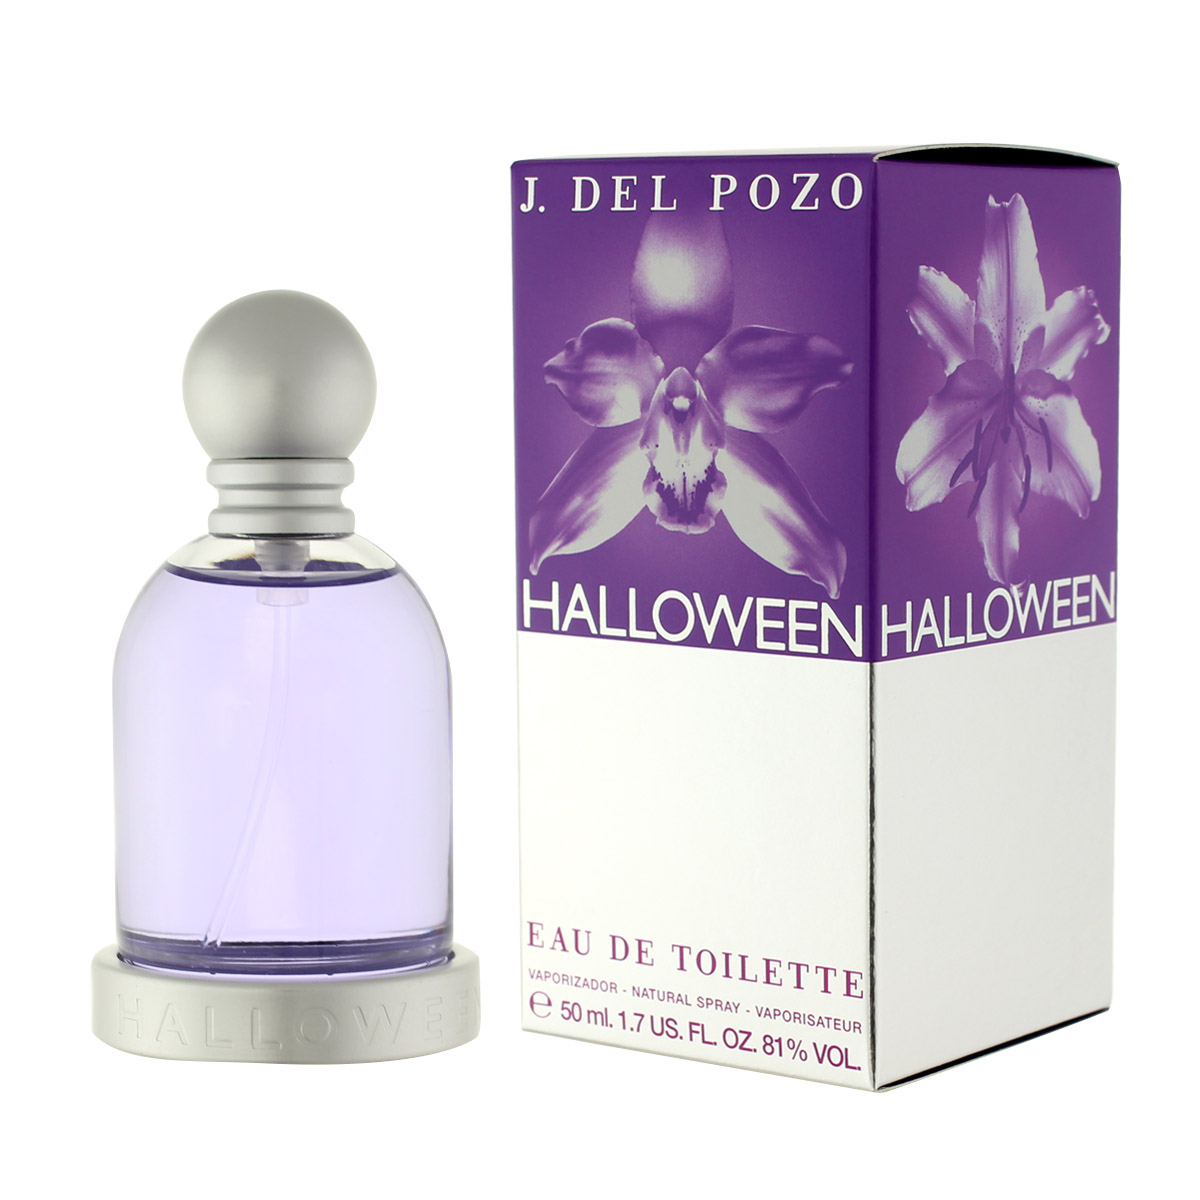 Jesus del Pozo Halloween Eau De Toilette 50 ml (woman) 24877